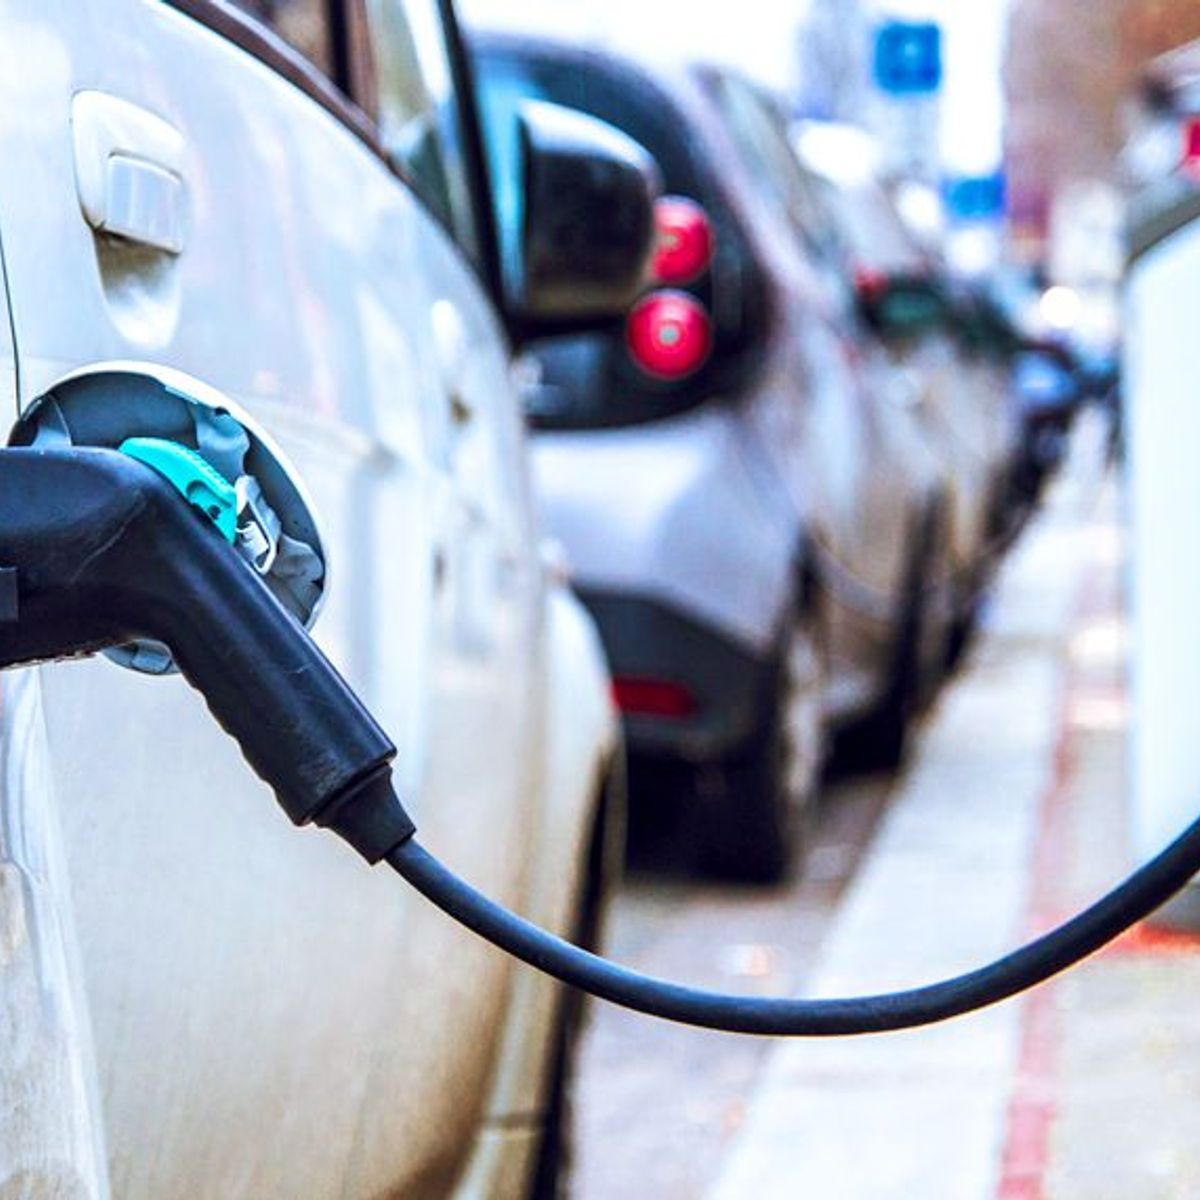 Why a measured transition to electric vehicles would benefit the U.S.